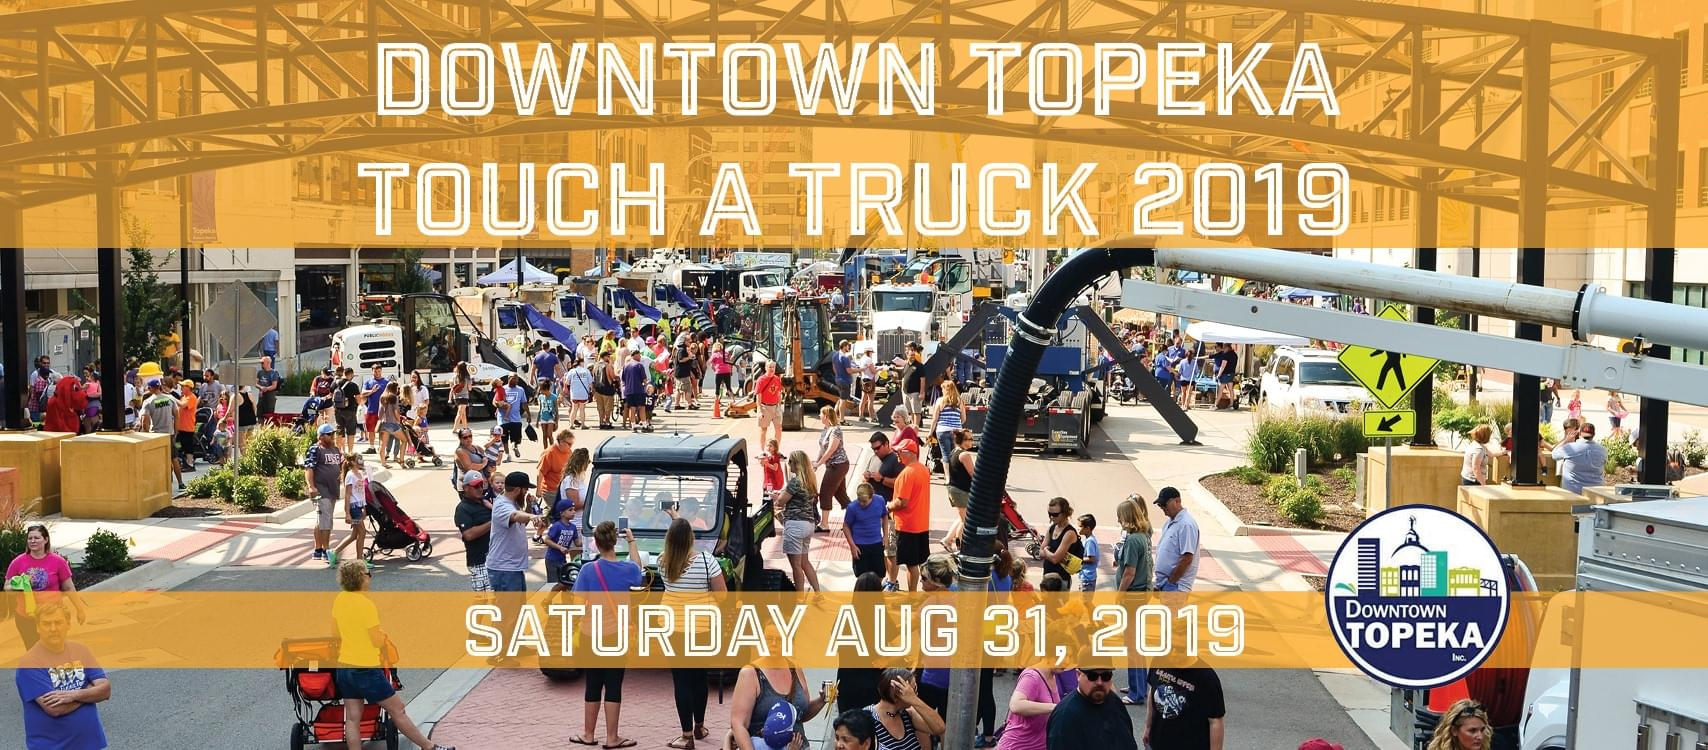 7th Annual Touch a Truck